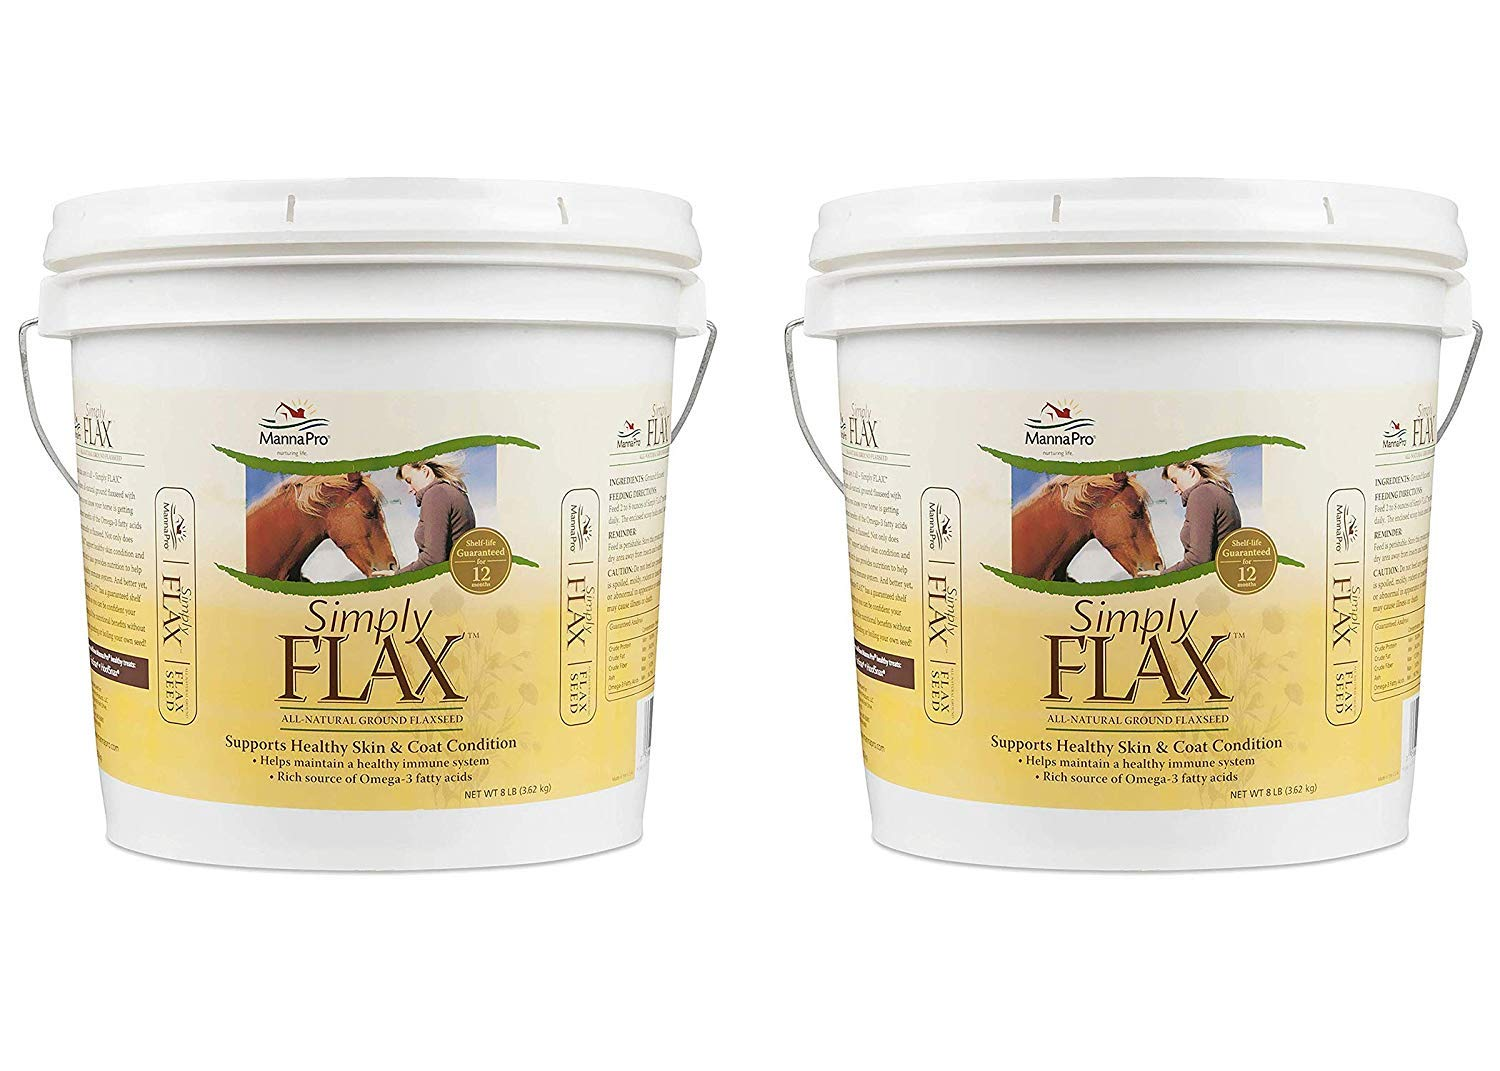 Manna Pro Simply Flax for Horses, 8 Pounds (Pack of 2)